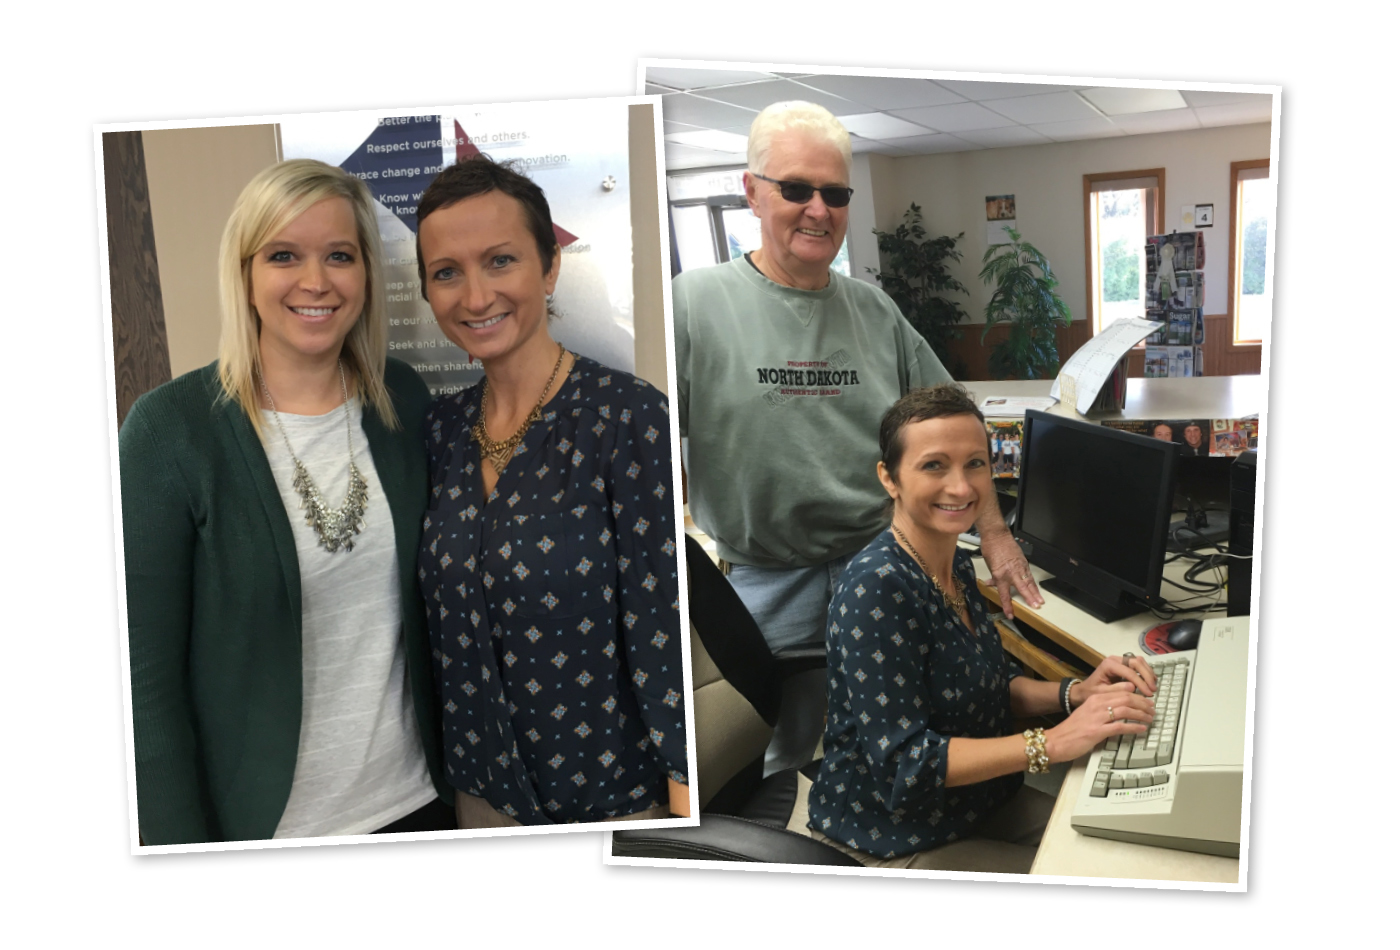 Two Pictures: (1) Lacey Mathison and Sharon Soeby stand together. (2) Sharon Soeby sitting at a typewriter with Dave smiling behind her.